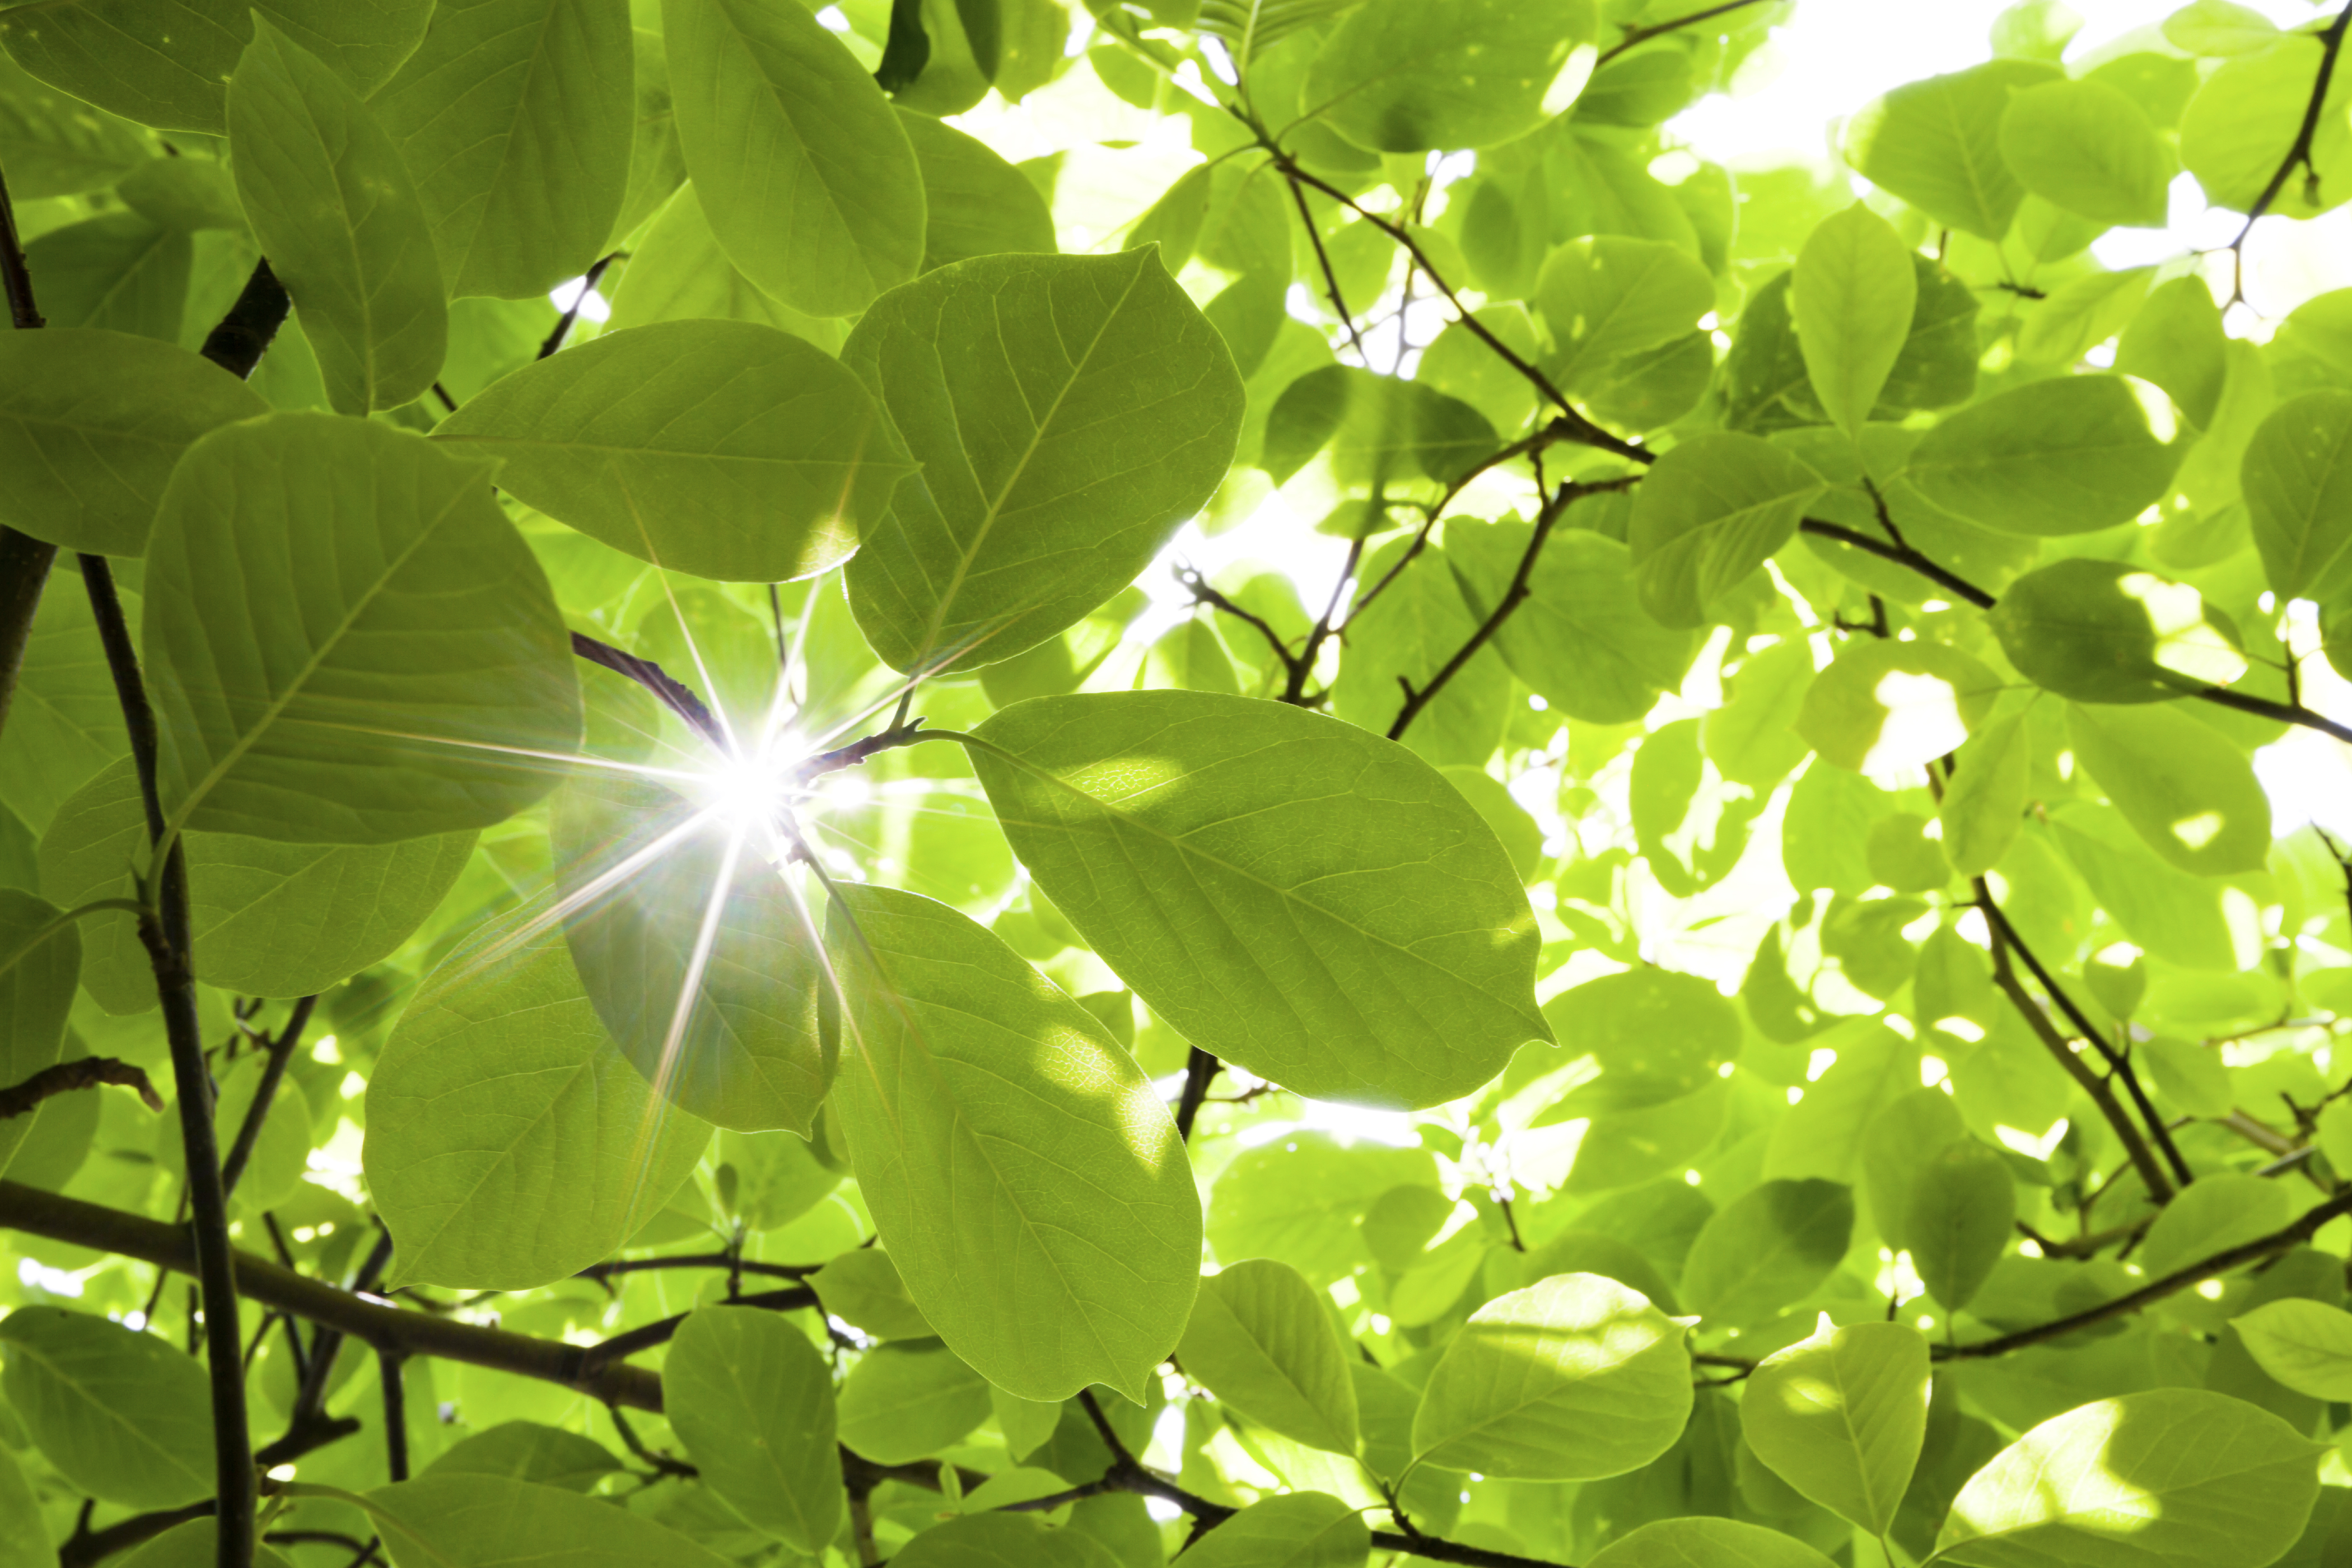 light_ray_through_forest_plants